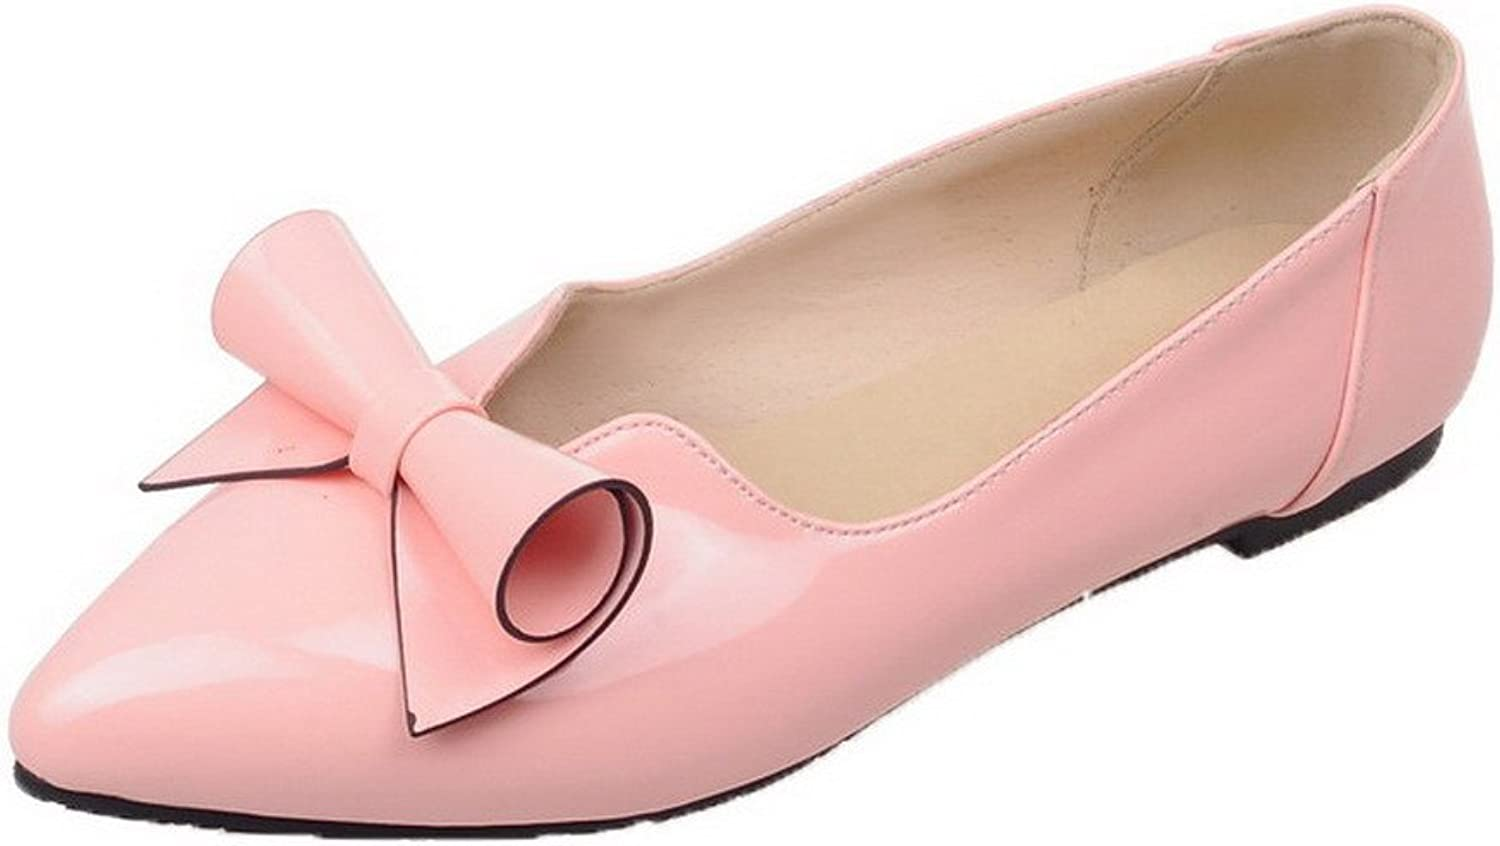 AmoonyFashion Women's Low Heel Solid Pu Closed-Toe Pumps-shoes